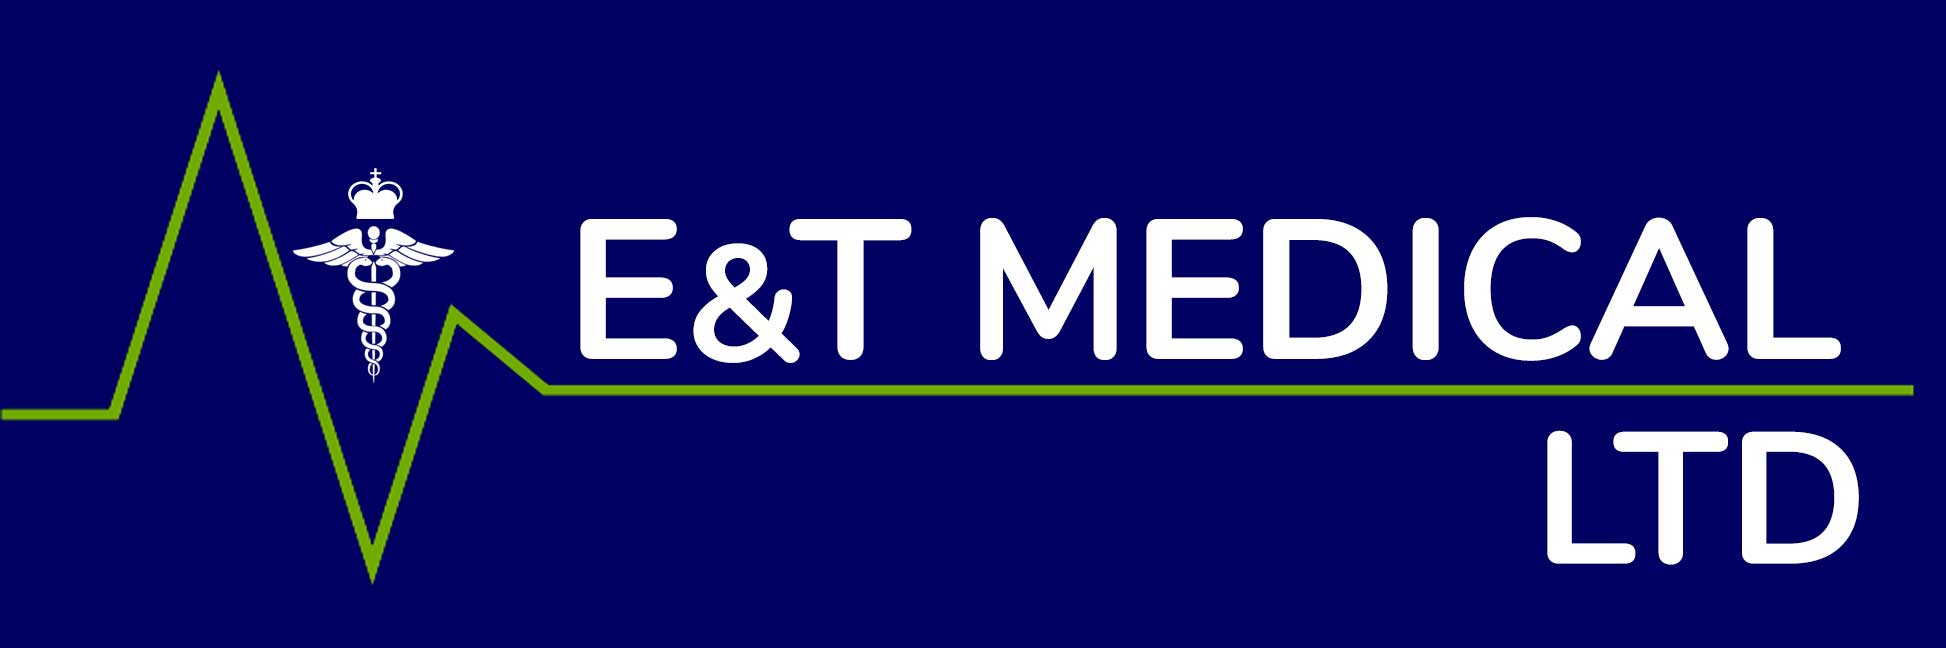 E&T Medical Ltd Logo